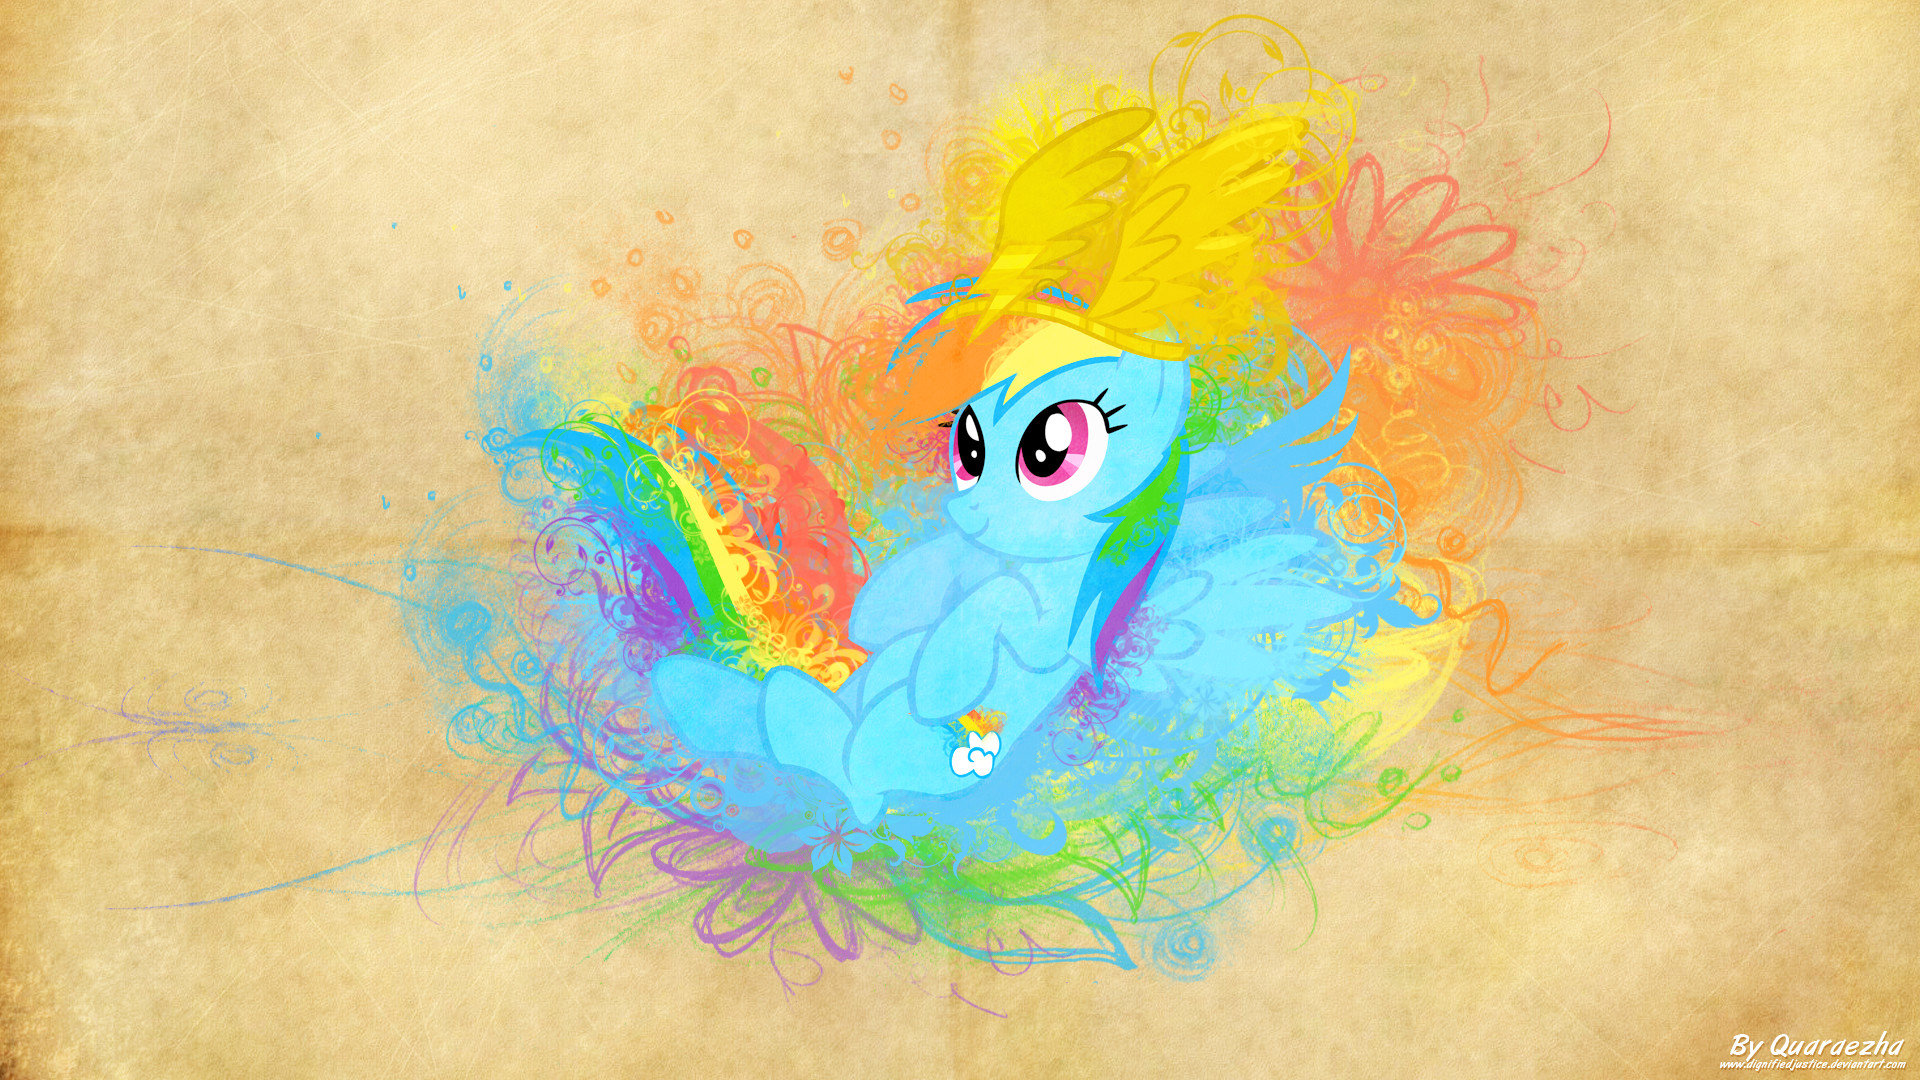 Rainbow Dash wallpapers 1920x1080 Full HD (1080p) desktop ...